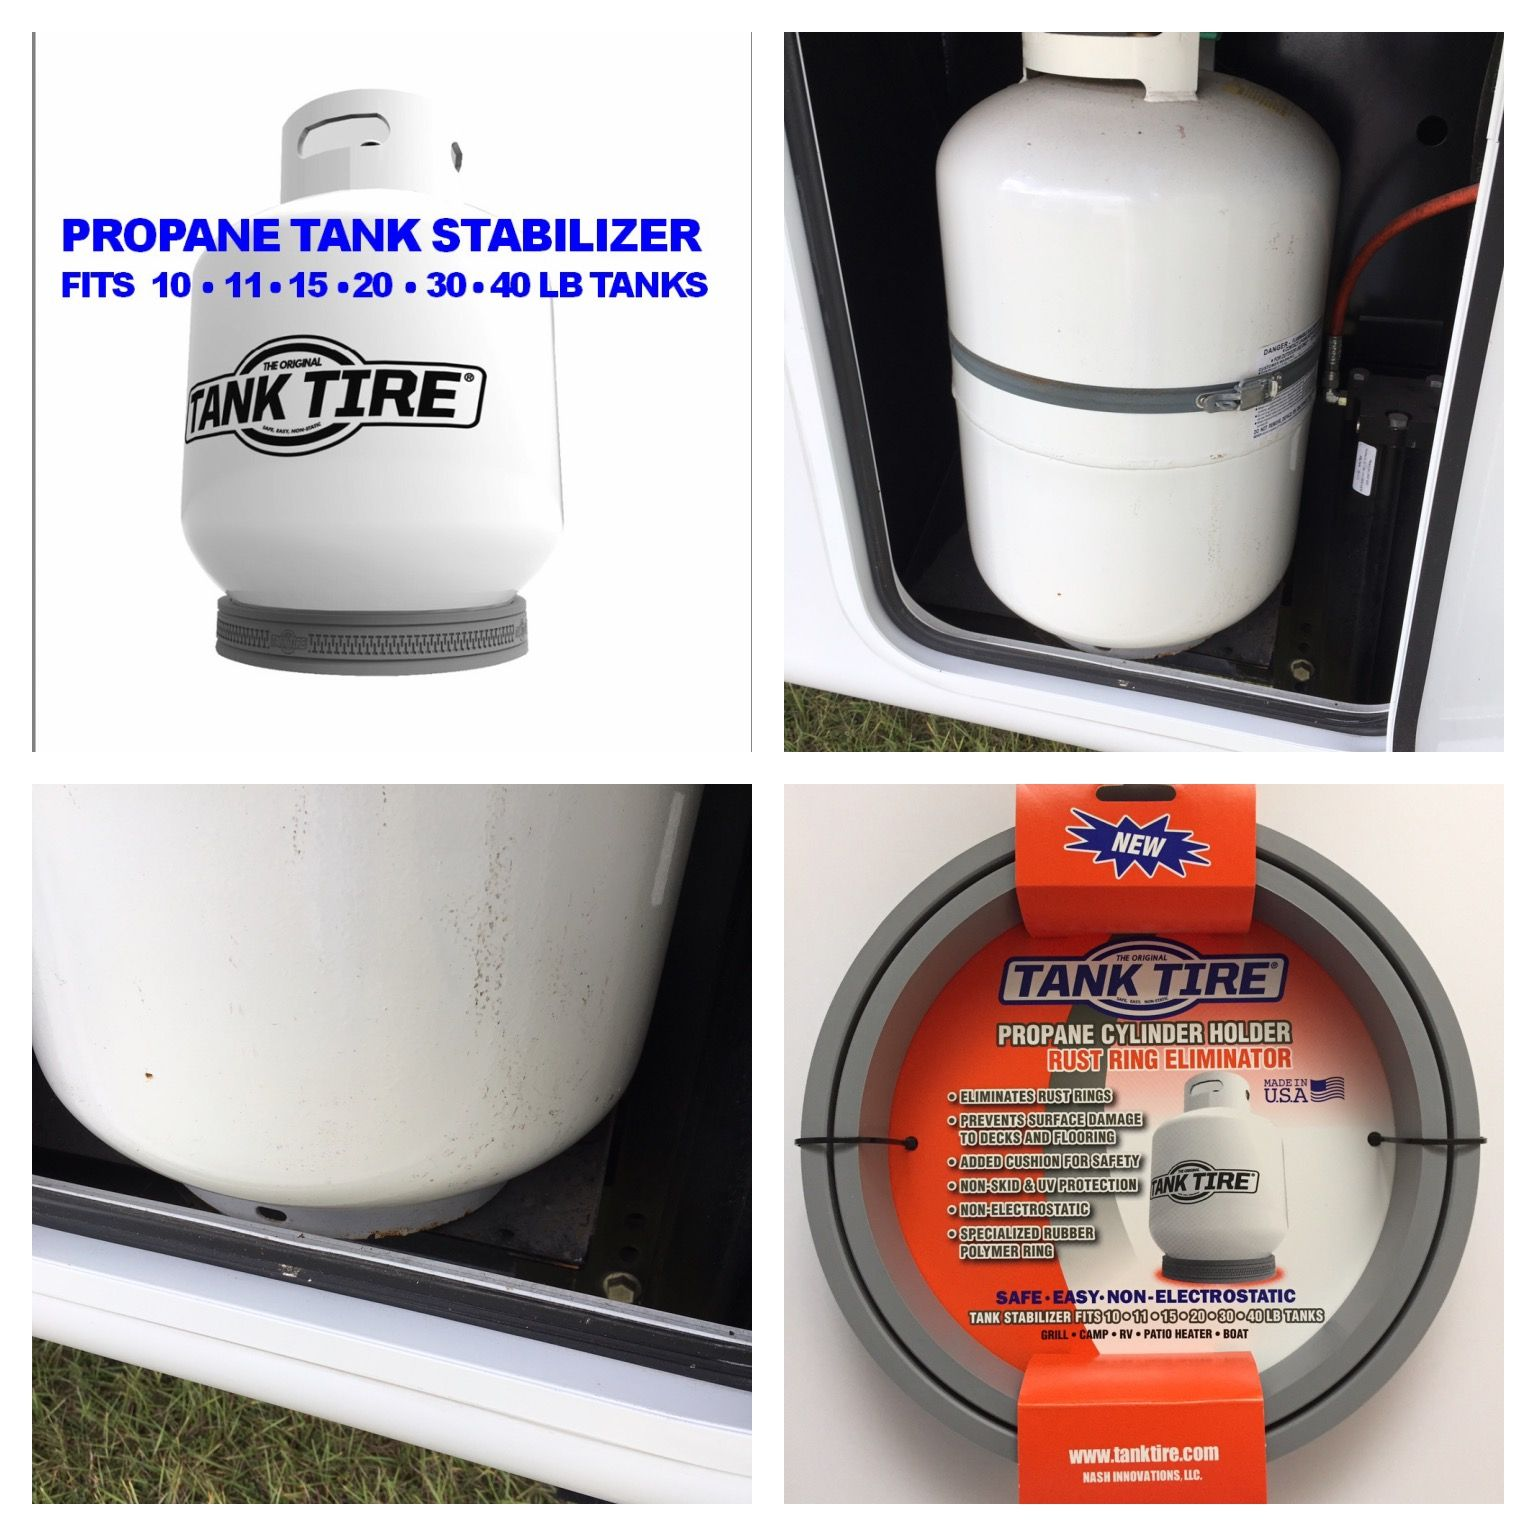 Brand New 30 Lb Propane Tank On An Rv Already Rusting Tank Tire Is The Only Product On The Market That Can Fit A Propane Tank Propane Cylinder Wheel Repair